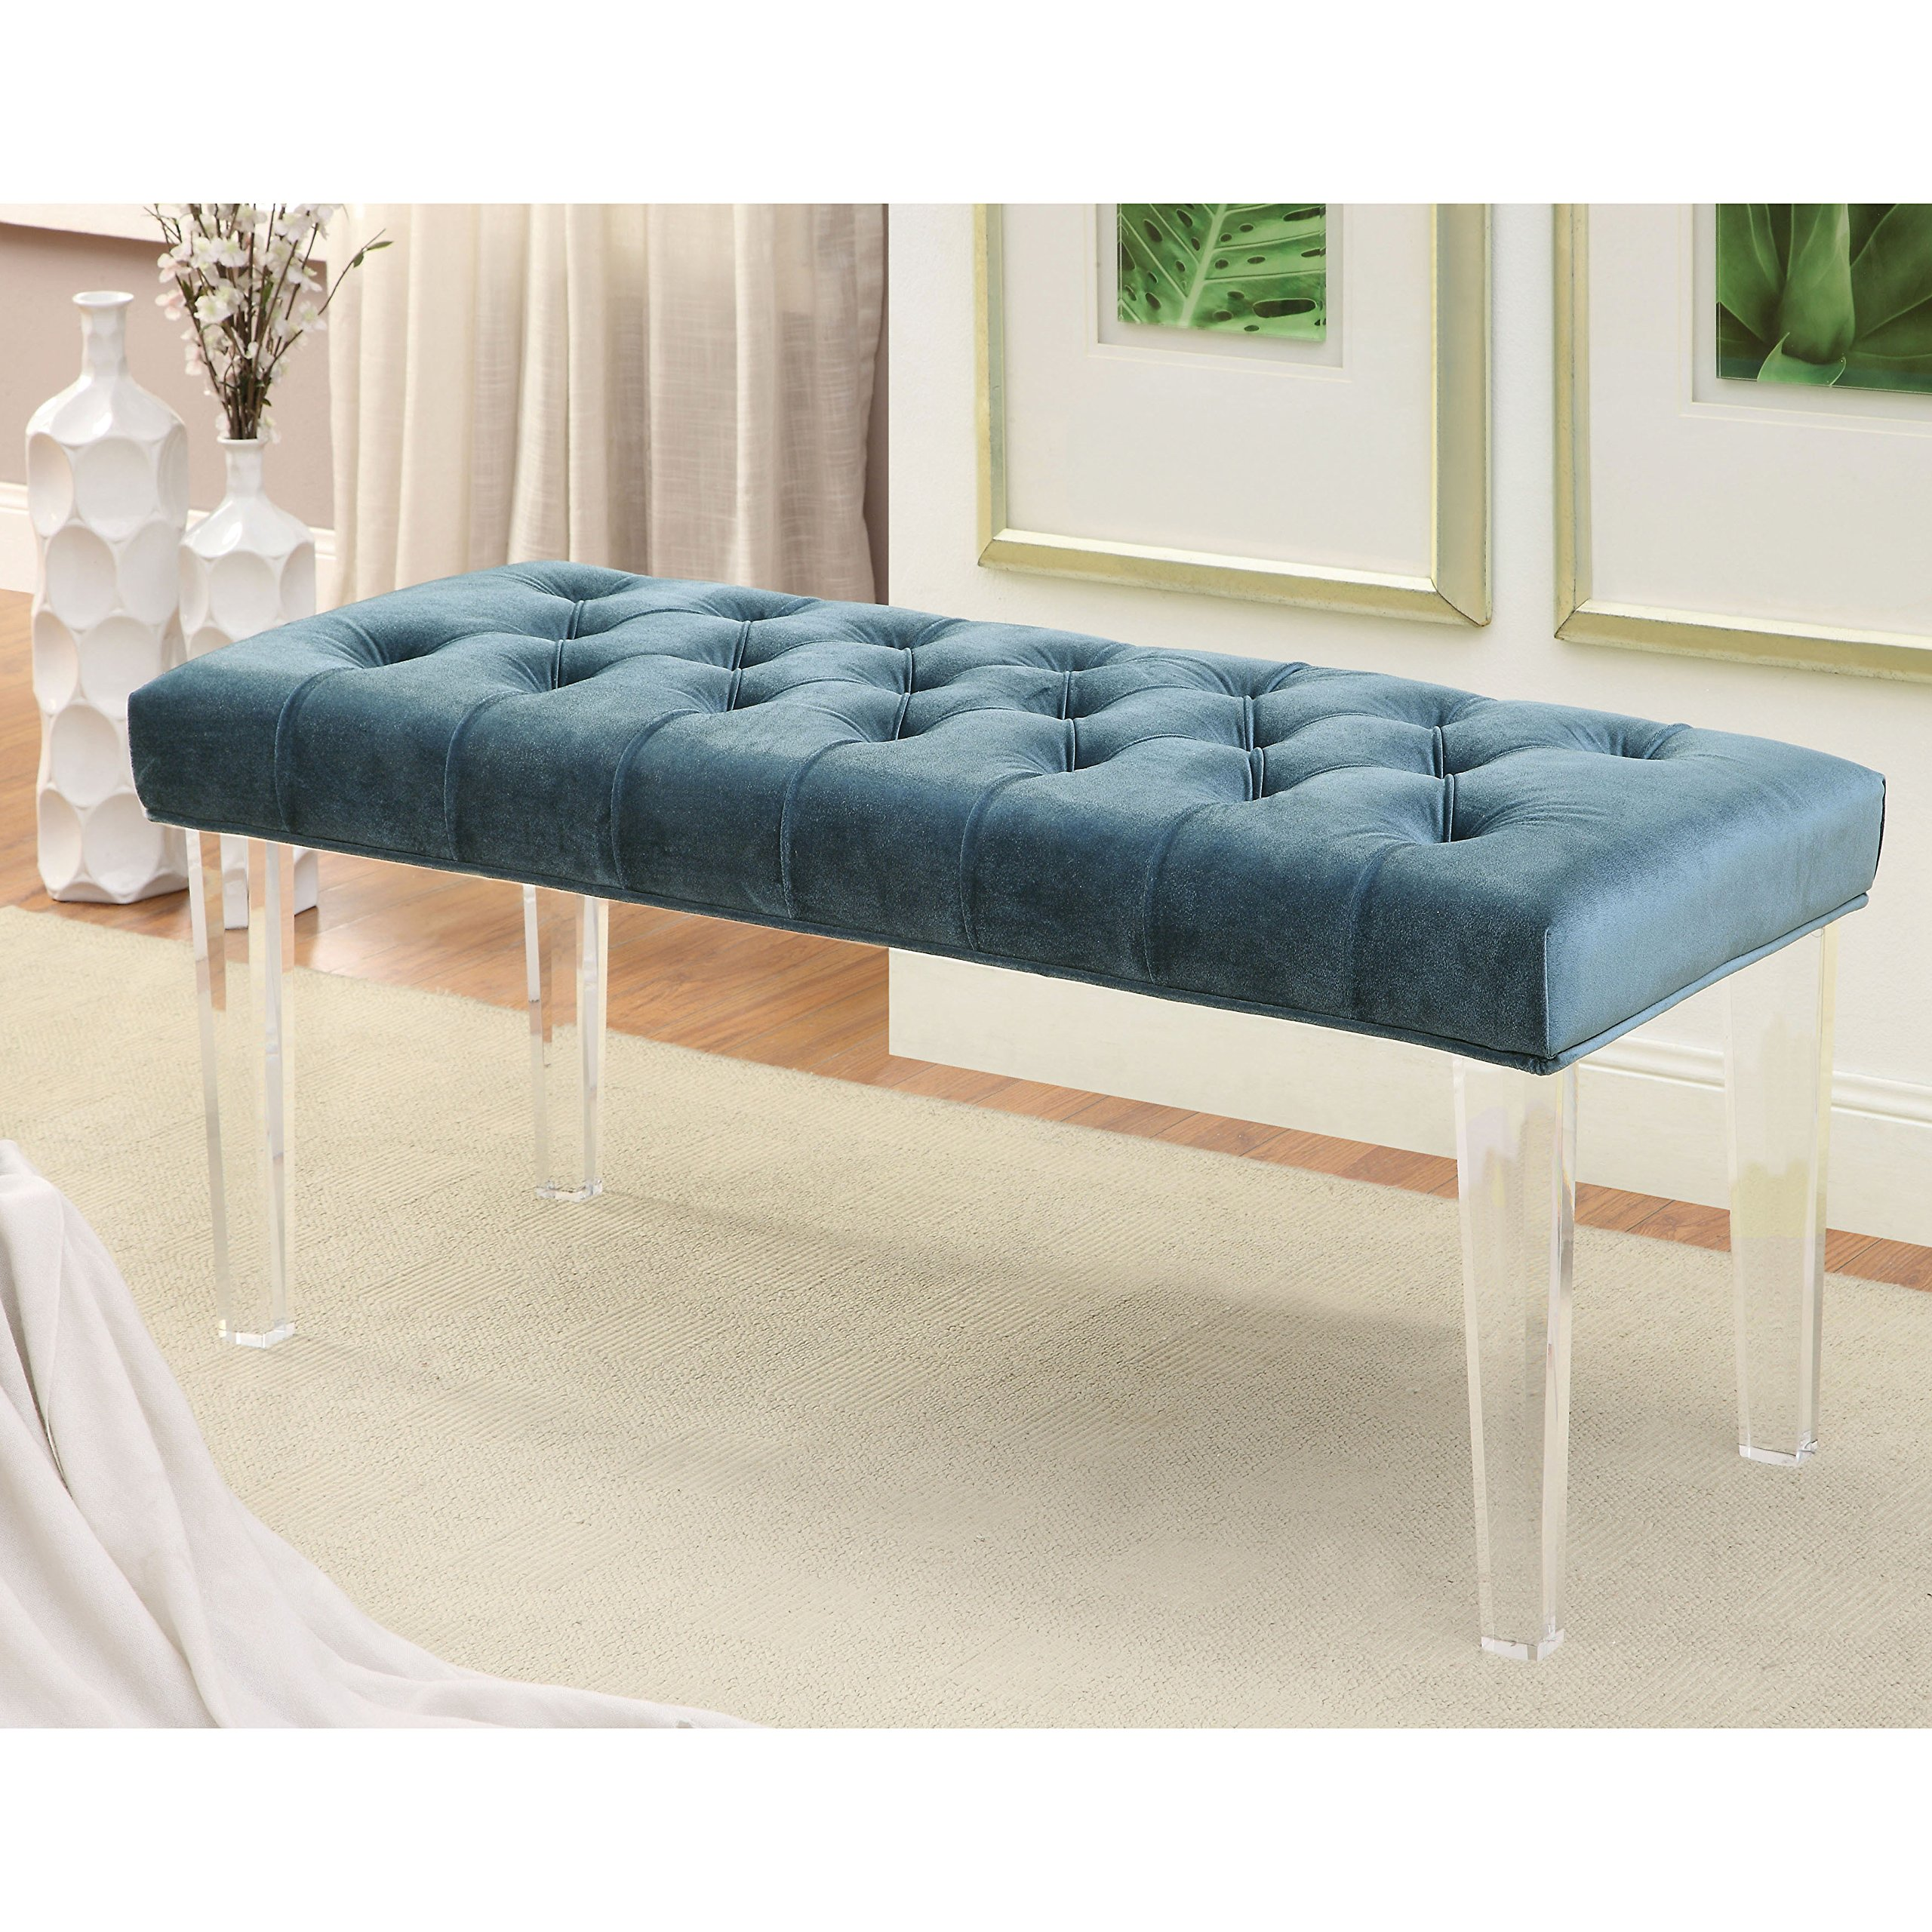 Furniture of America Brissy Contemporary Tufted Flannelette Clear Leg Accent Bench Blue